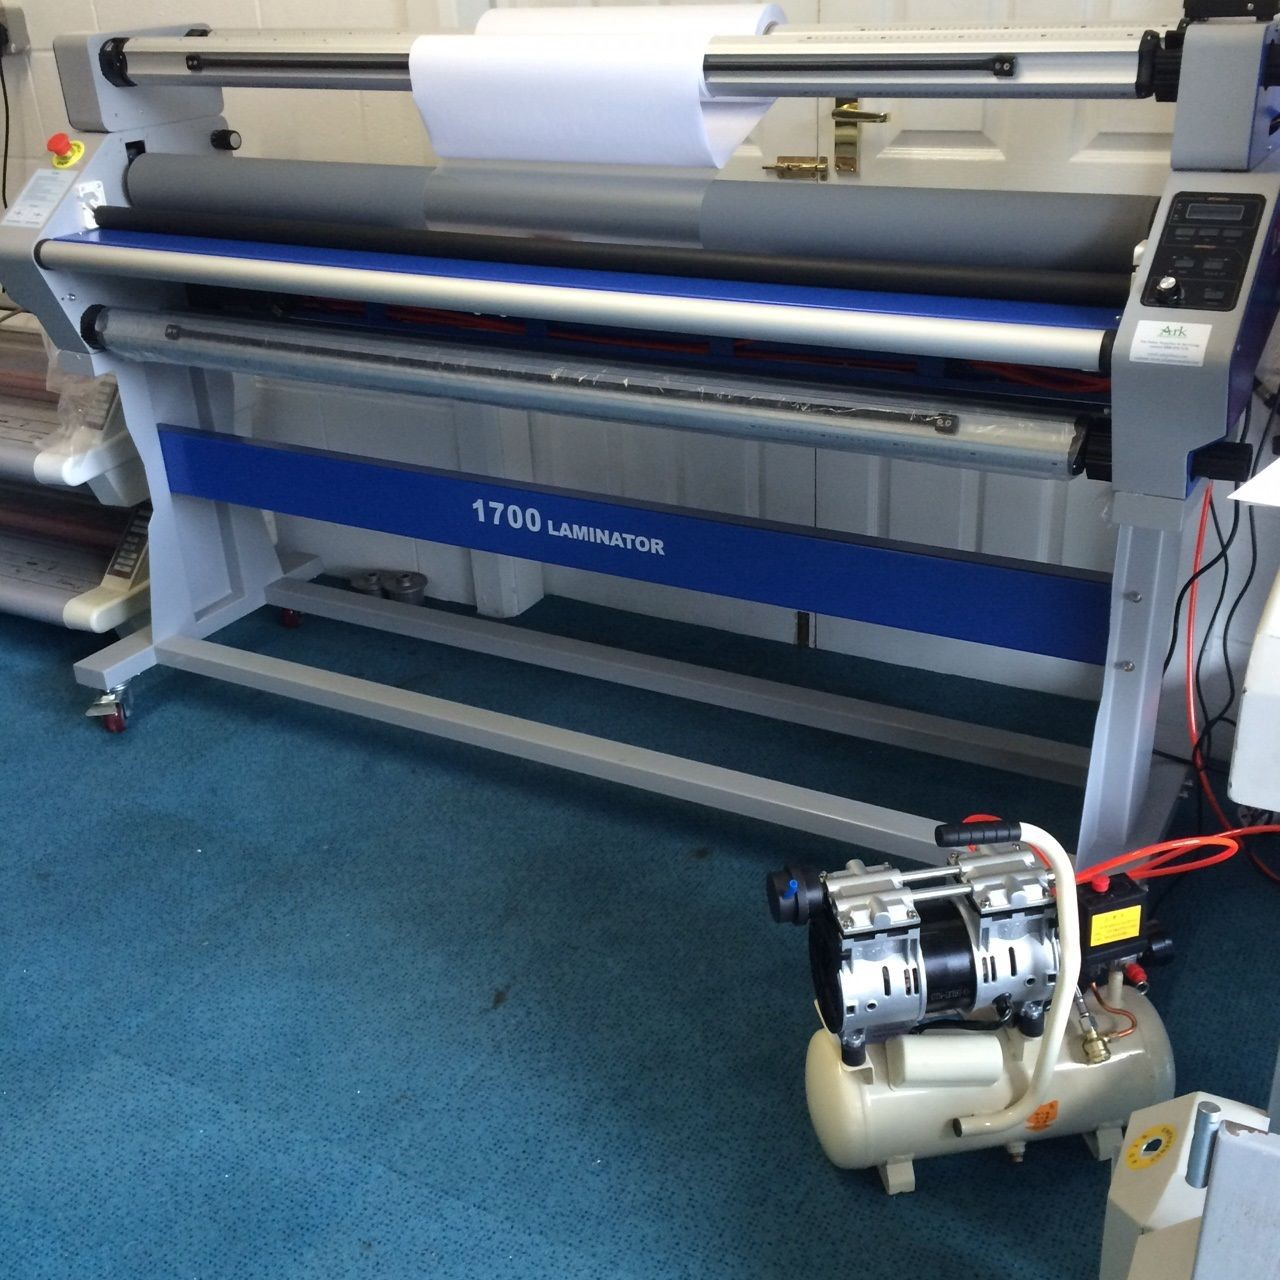 Get the Best Binding Equipments and Laminator from Ark Presentations